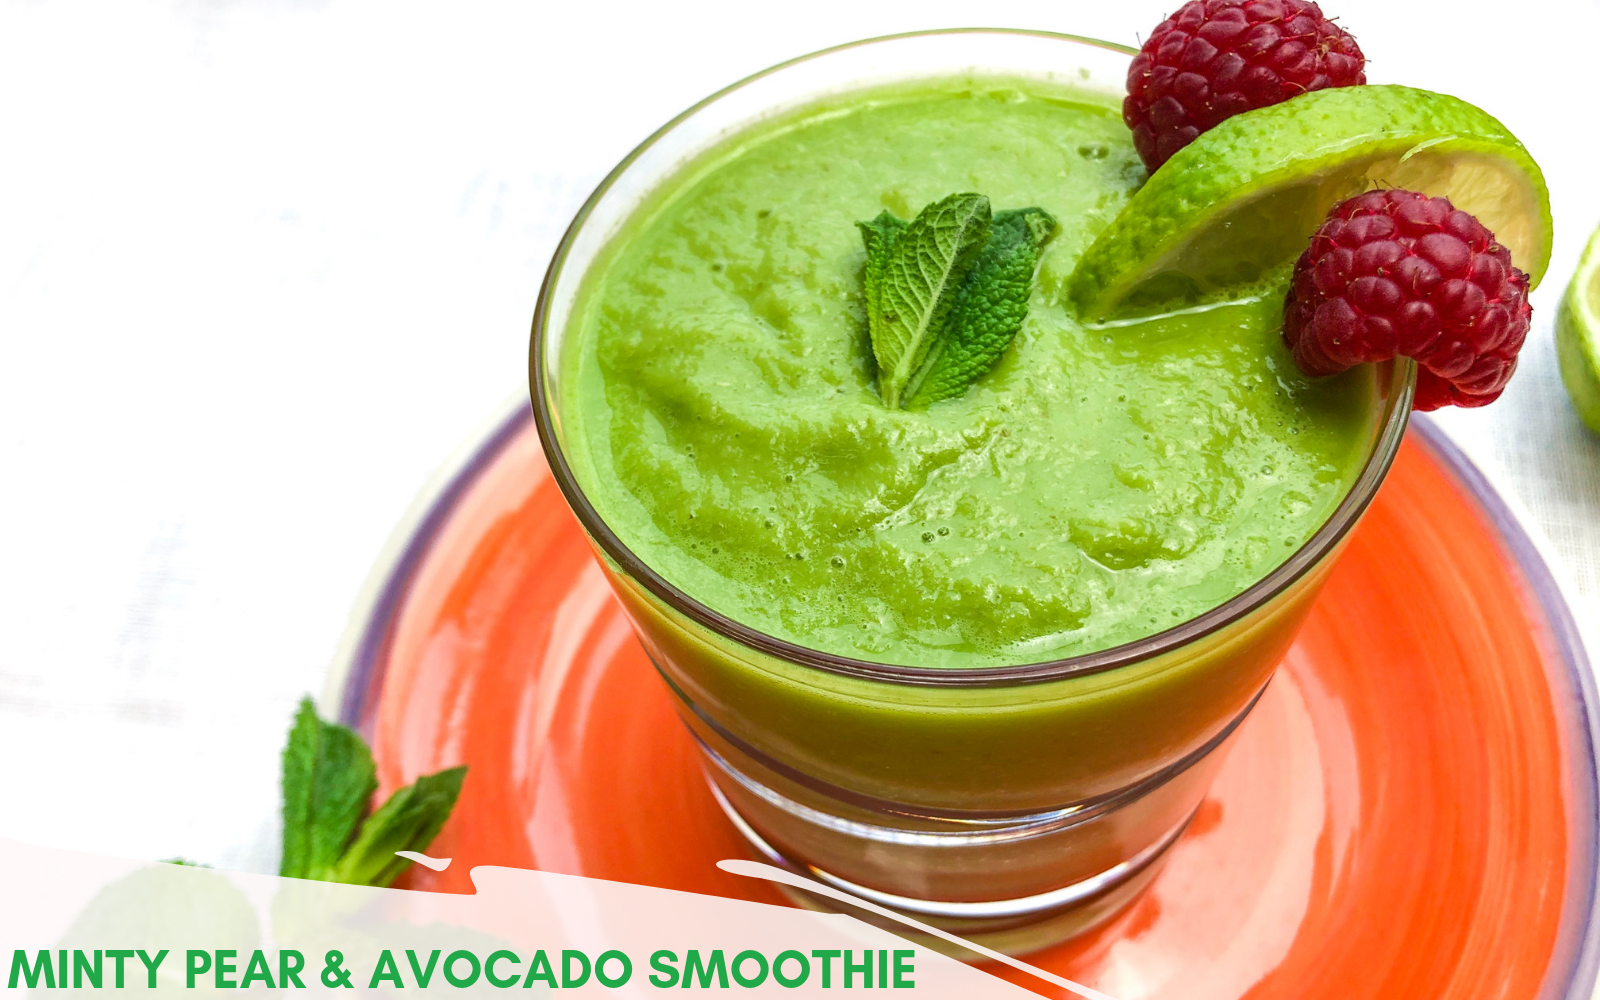 Best Vegan Green Smoothies | Minty Pear and Avocado Smoothie